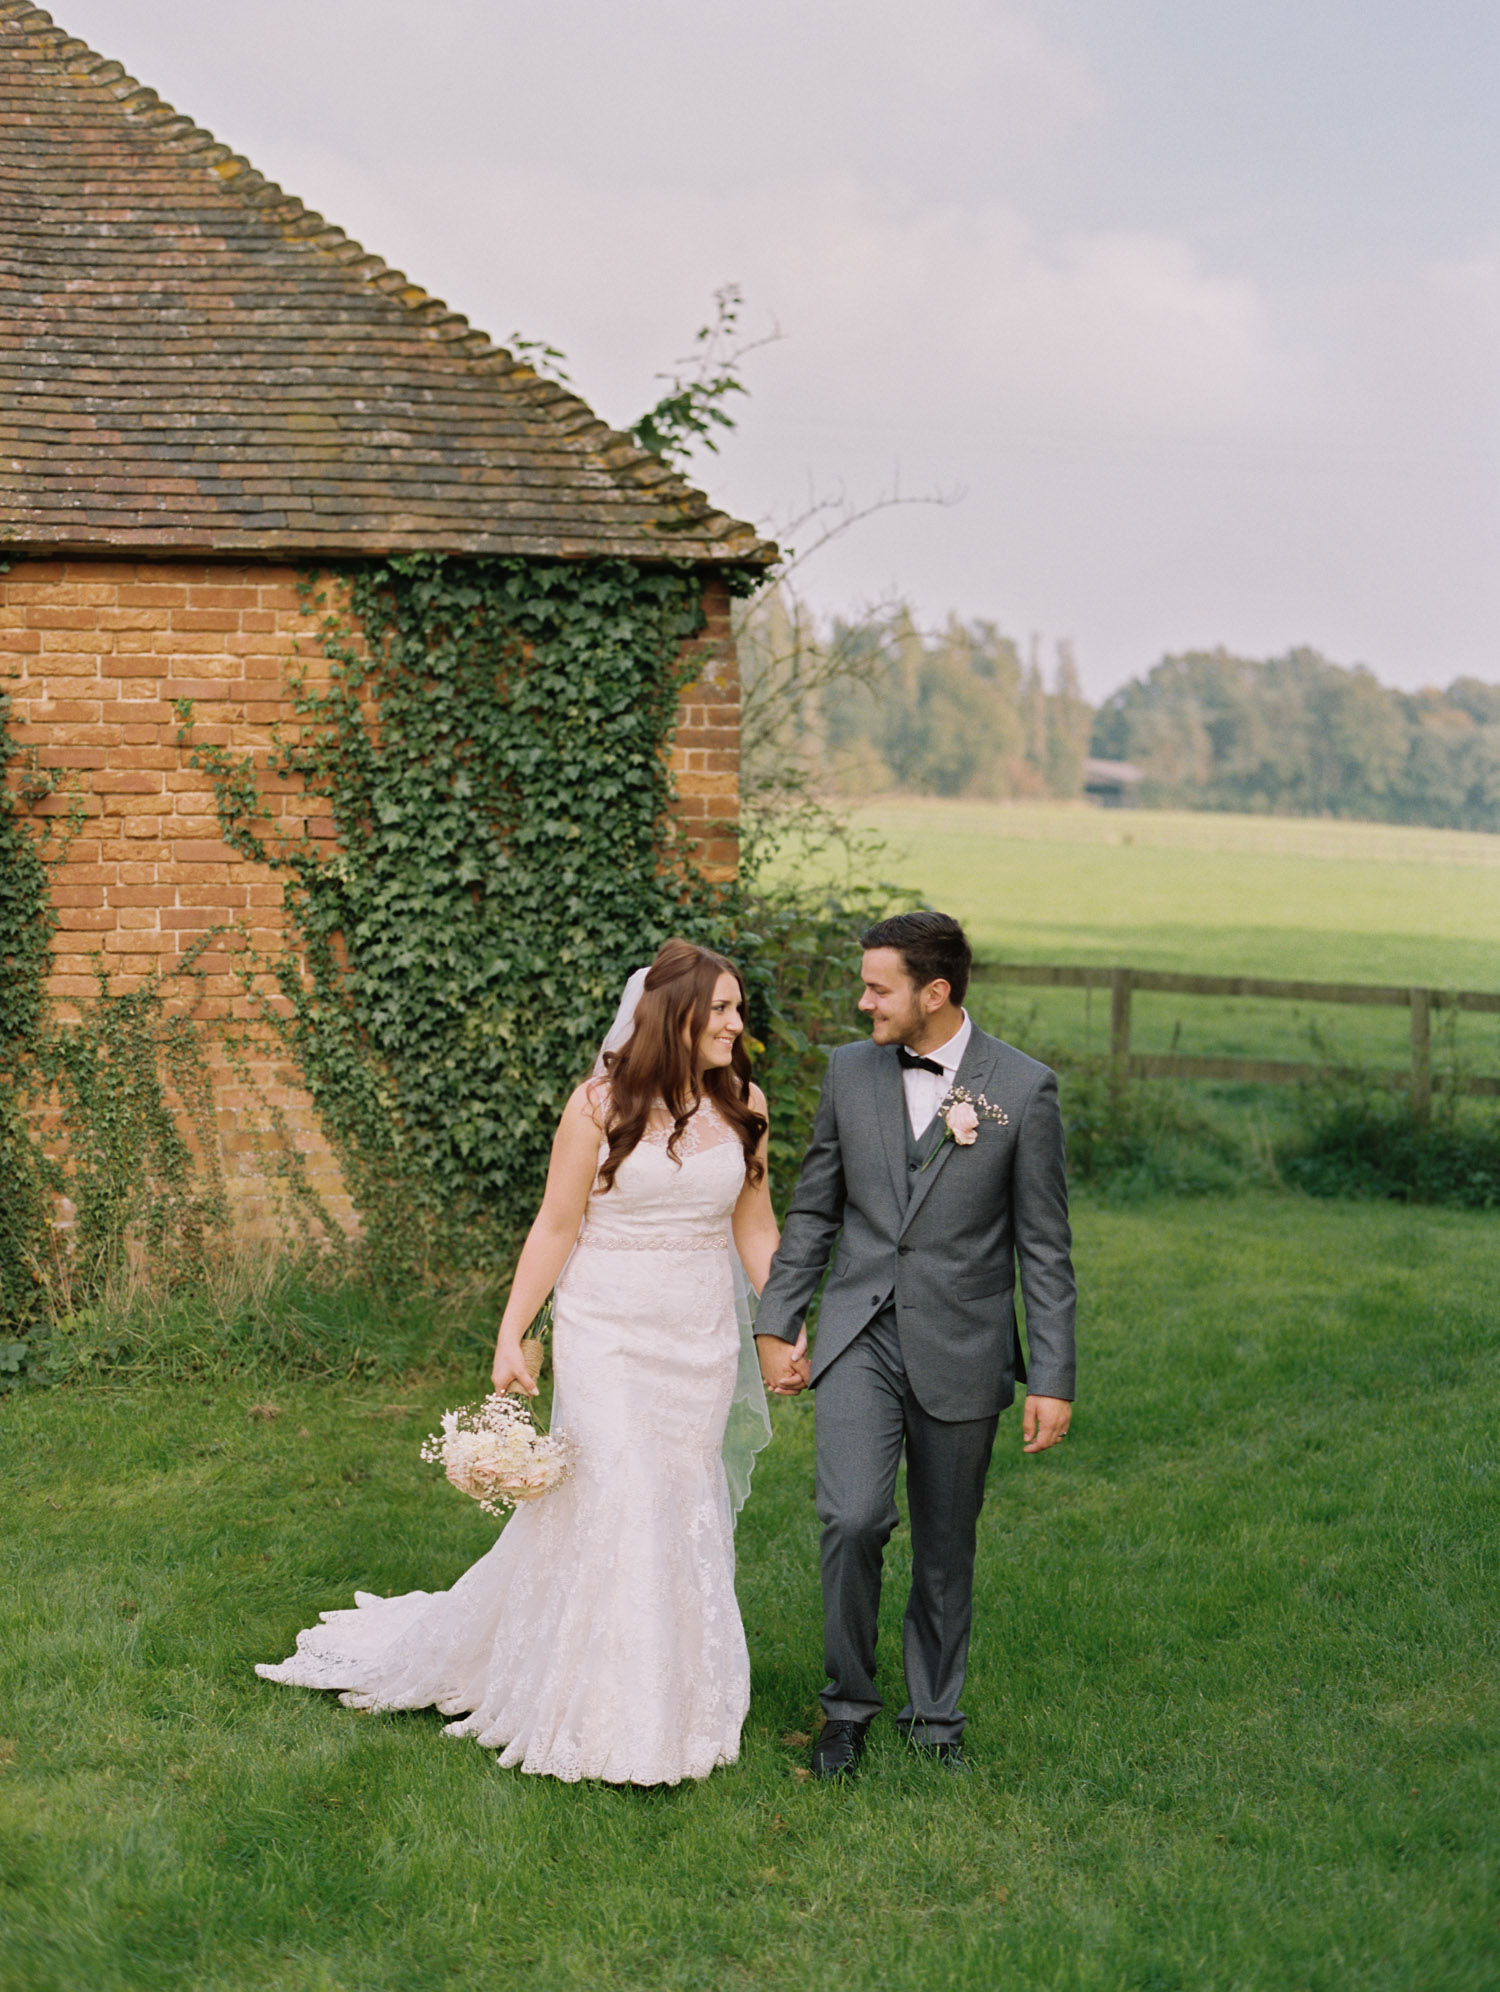 London_Wedding_Photographer-040.jpg